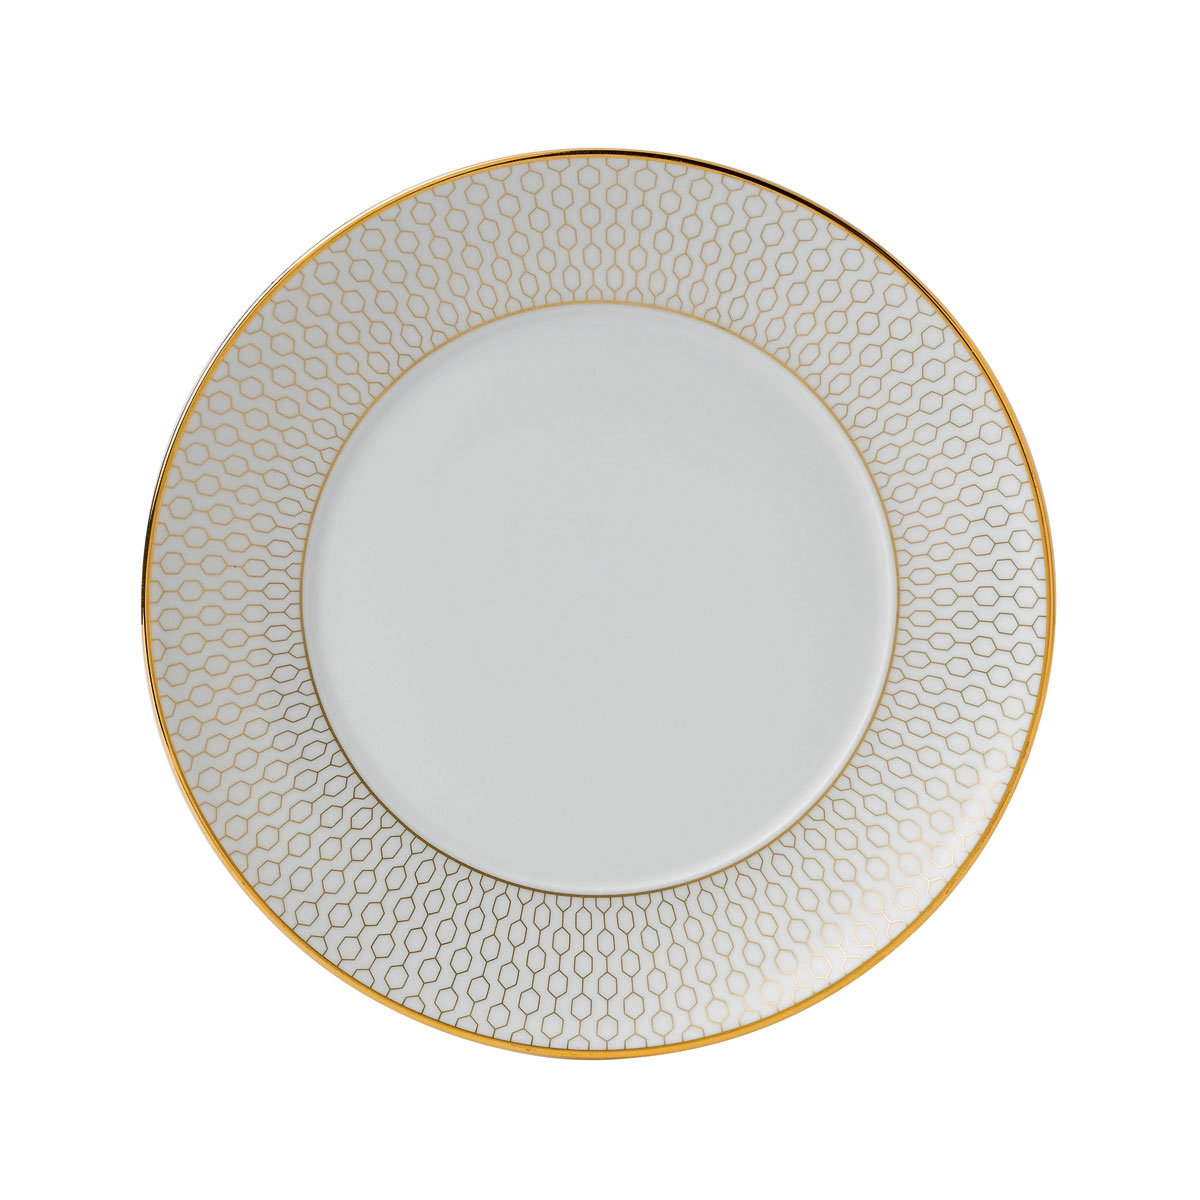 Wedgwood Arris Bread and Butter Plate, Single